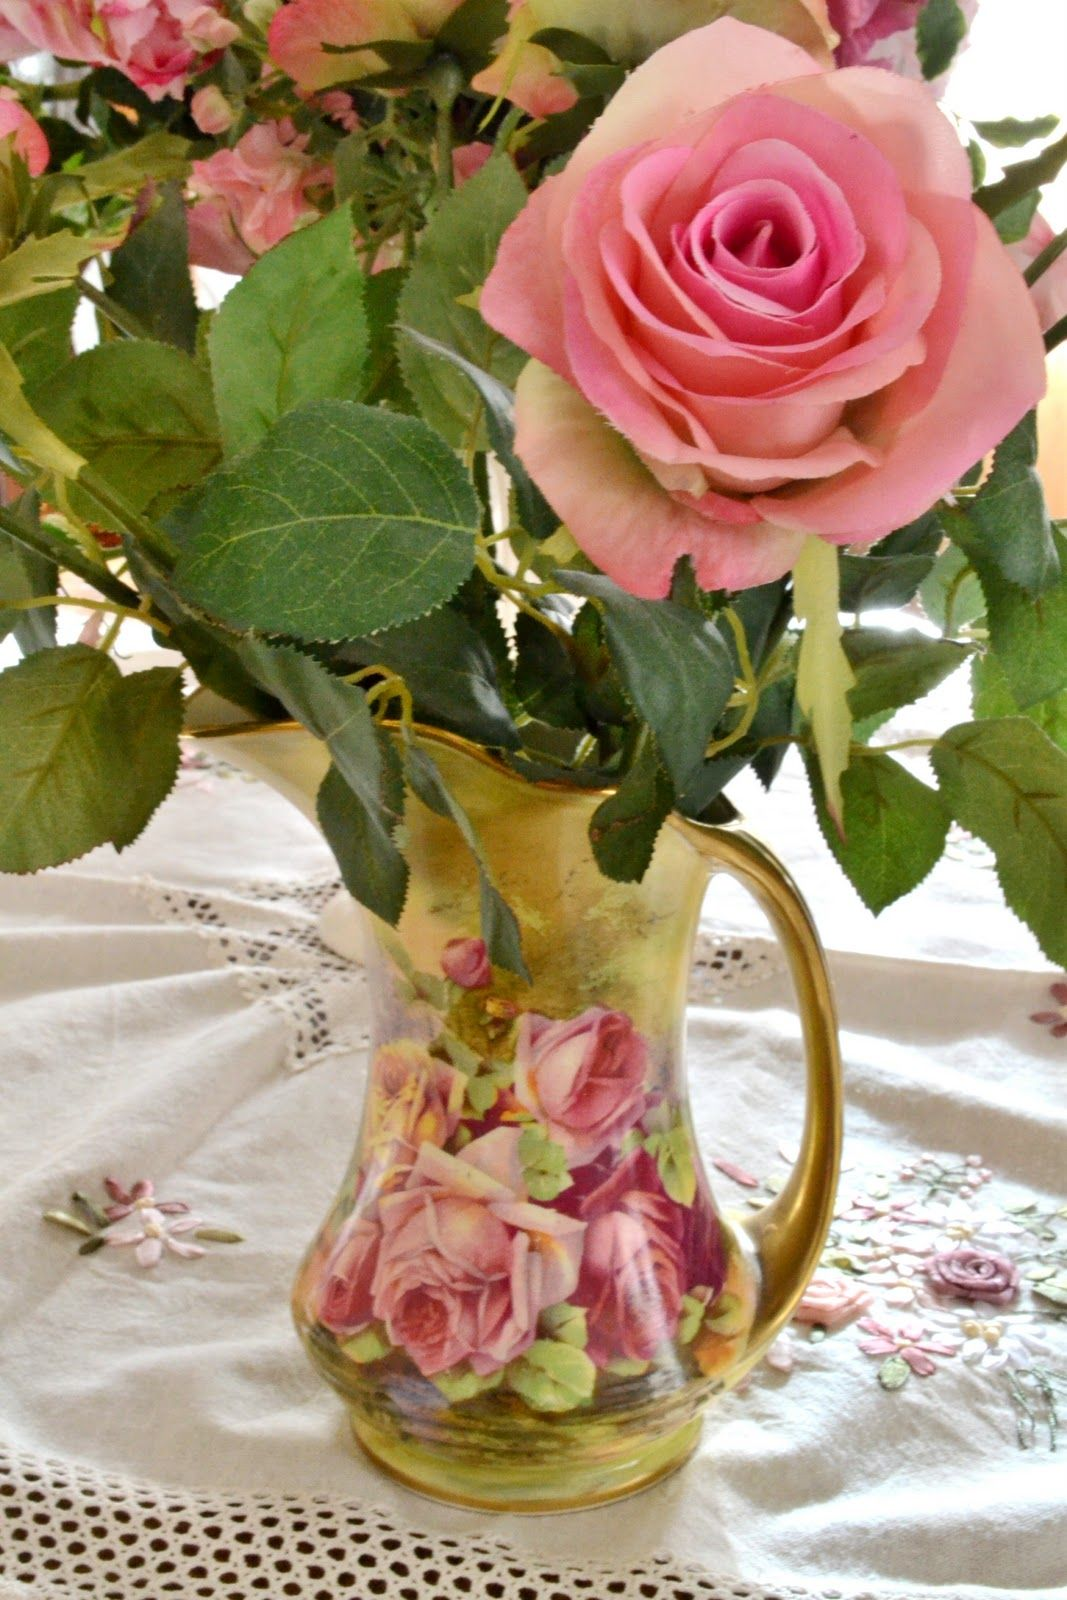 Gorgeous pitcher with lovely rose beautiful objects ideas gorgeous pitcher with lovely rose izmirmasajfo